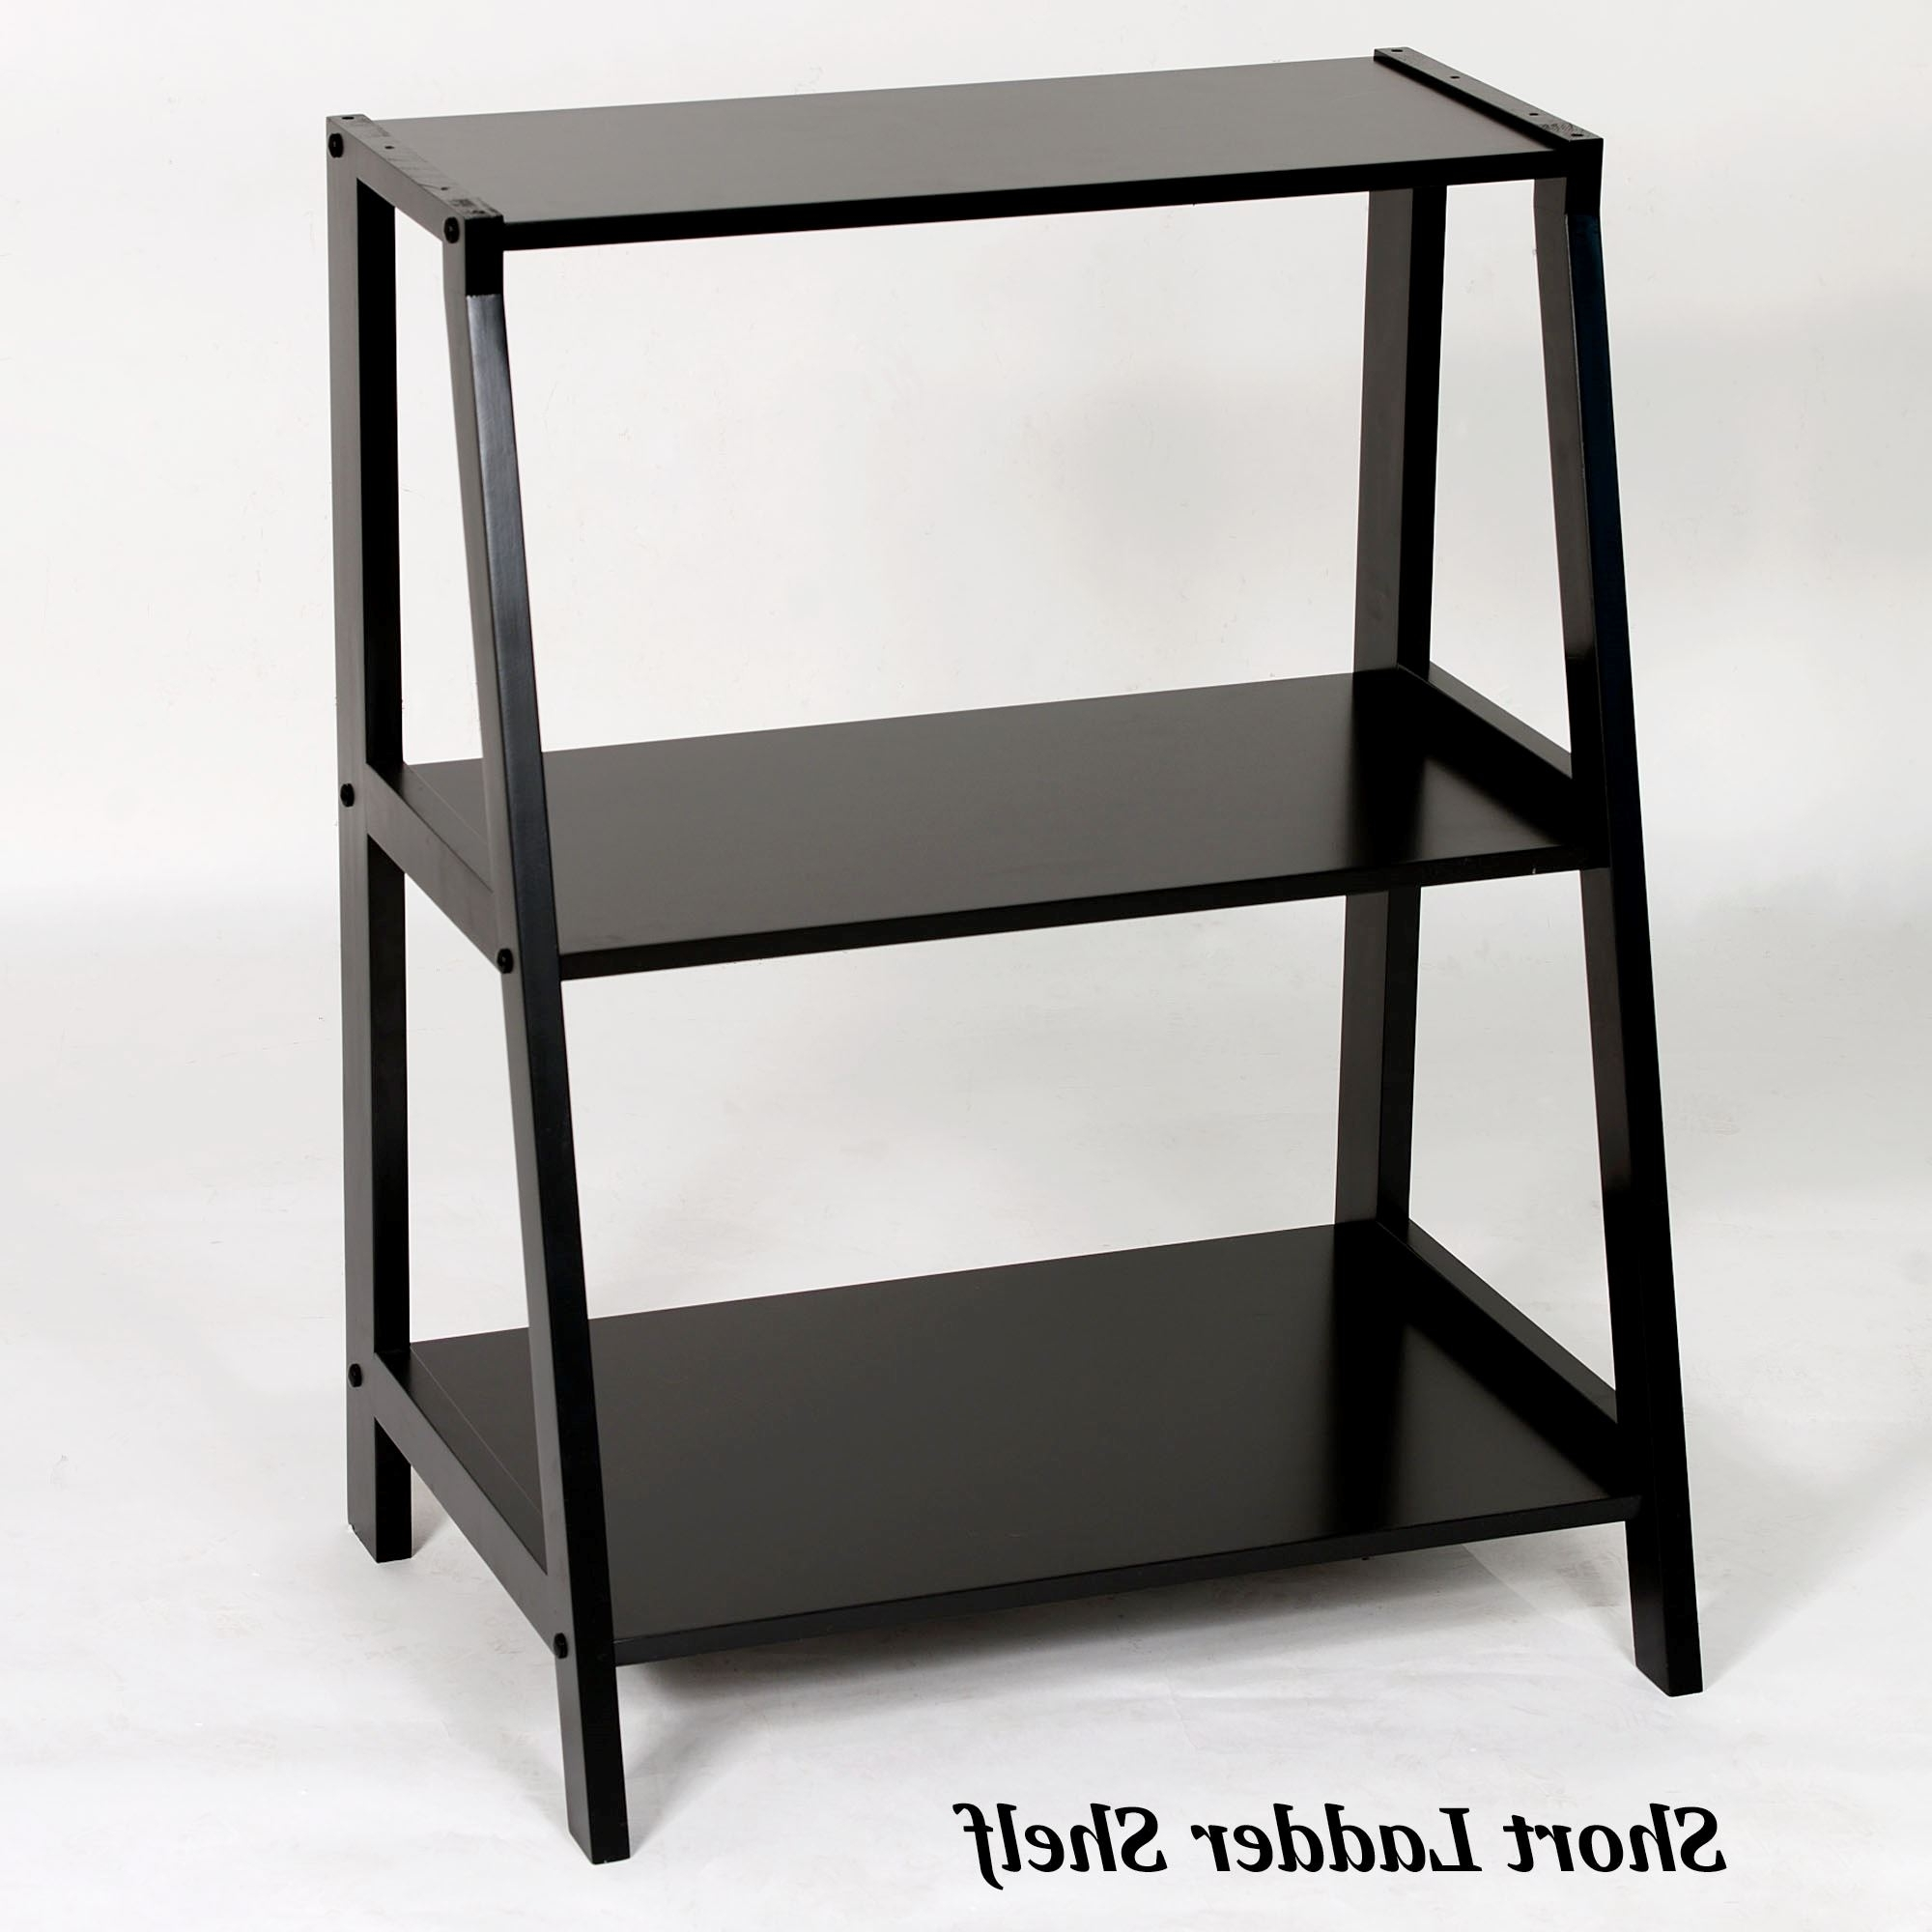 bookshelf and narrow for teenage rustic black bedside ideas white rooms diy ladder nightstand small posters table very